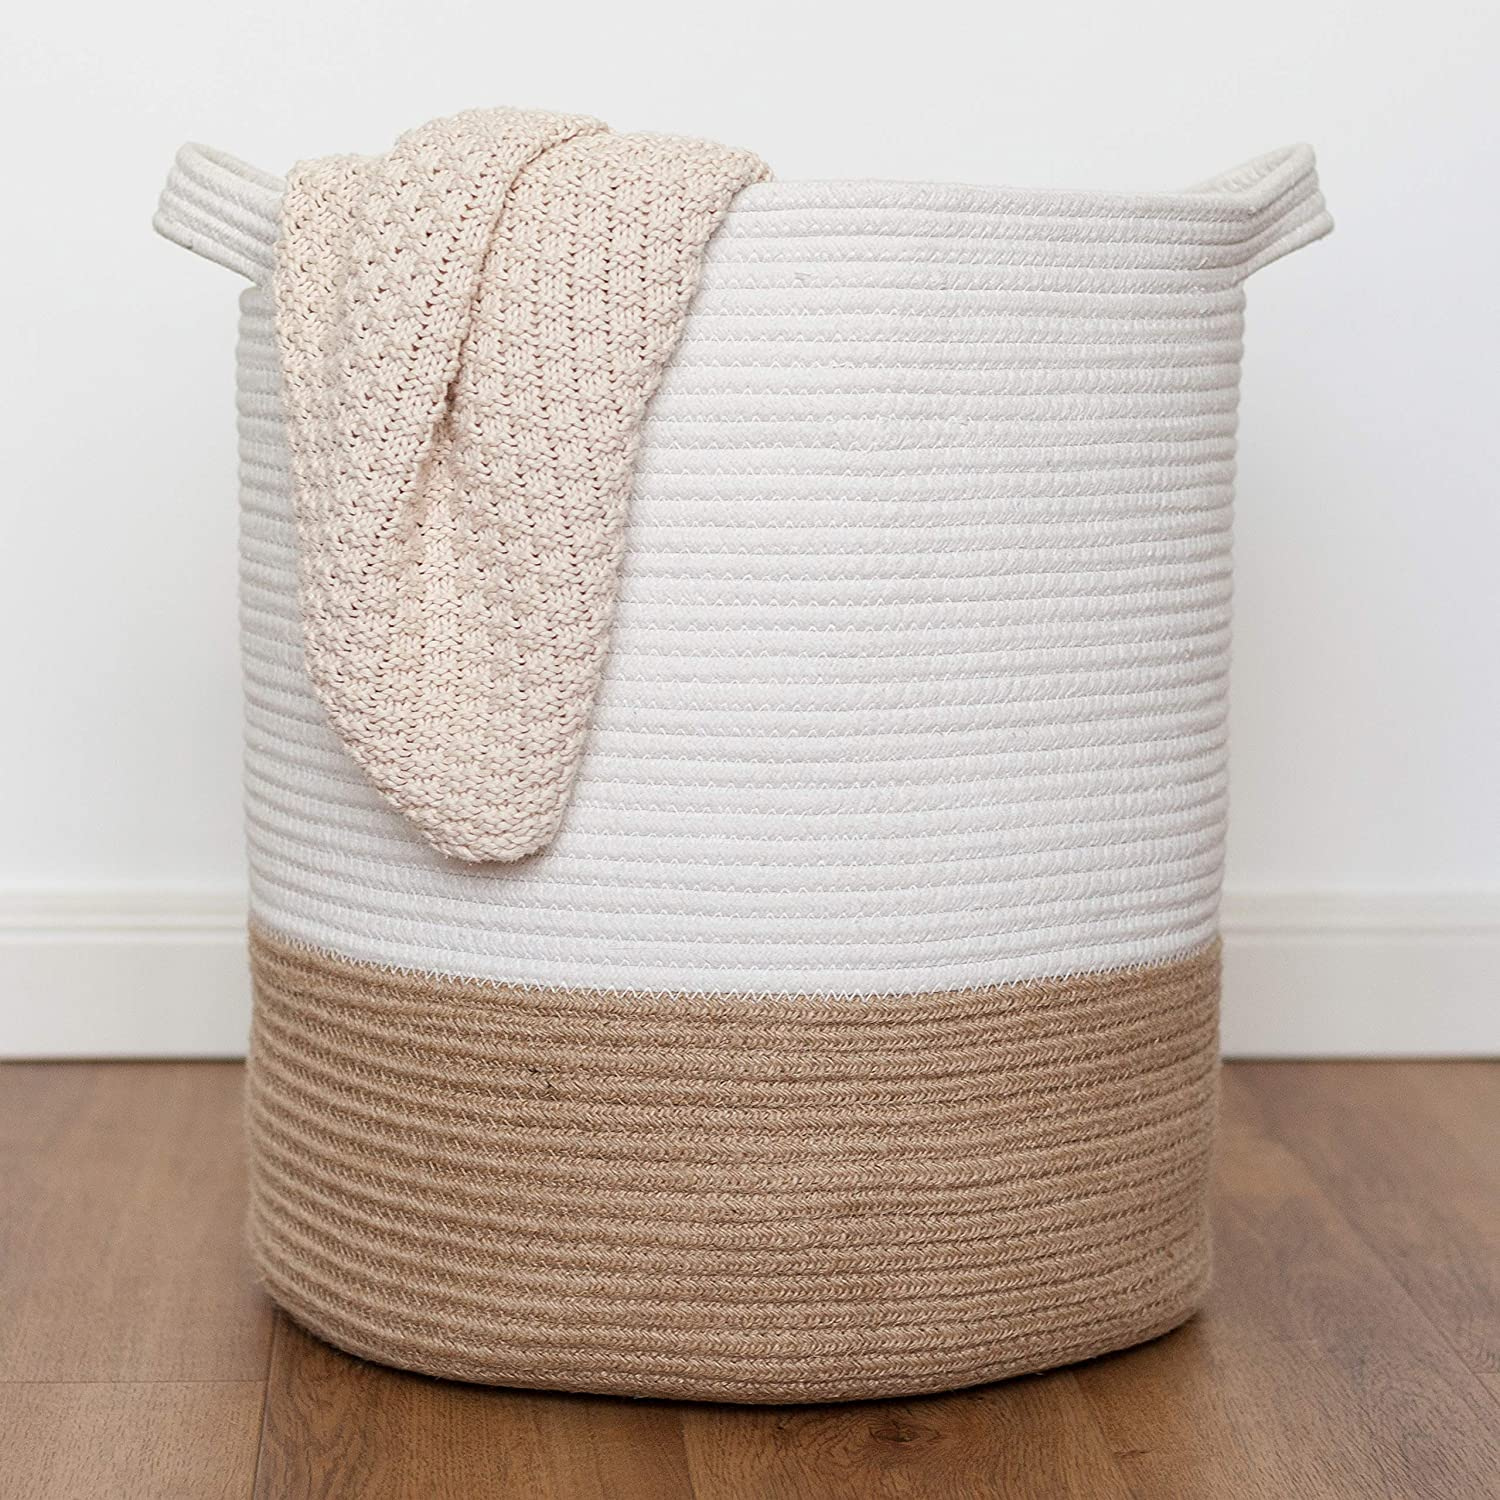 "Cotton Rope Basket,Woven Storage Basket and Blanket Basket,18""x15.5""Decorative Basket for Toy,Nursery,Baby Laundry,Plant and Bathroom,Large Laundry Basket with Handle"